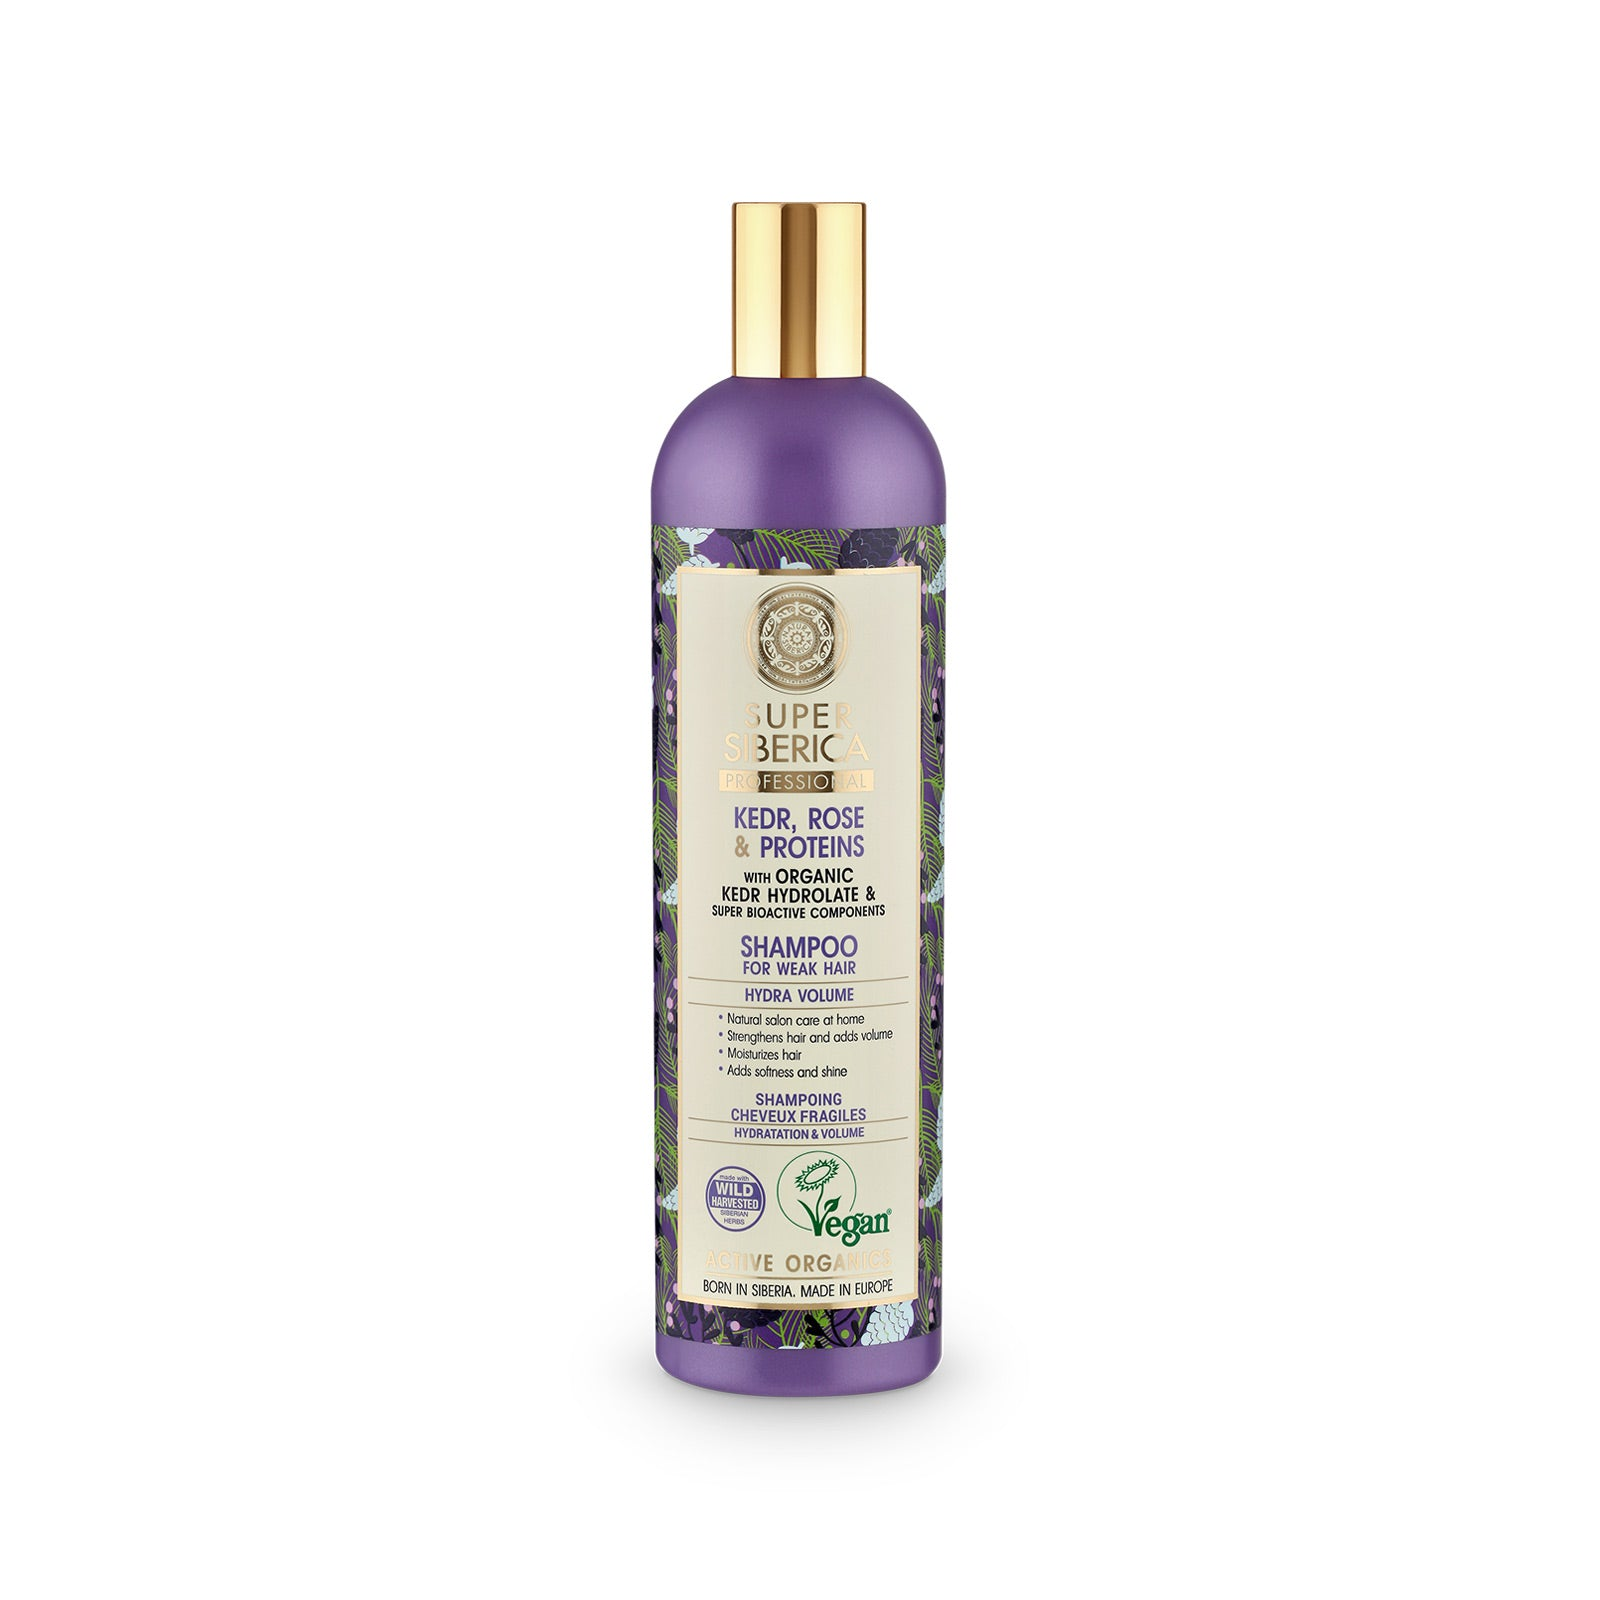 Super Siberica Kedr, rose & proteins. Shampoo for Weak Hair, 400 ml